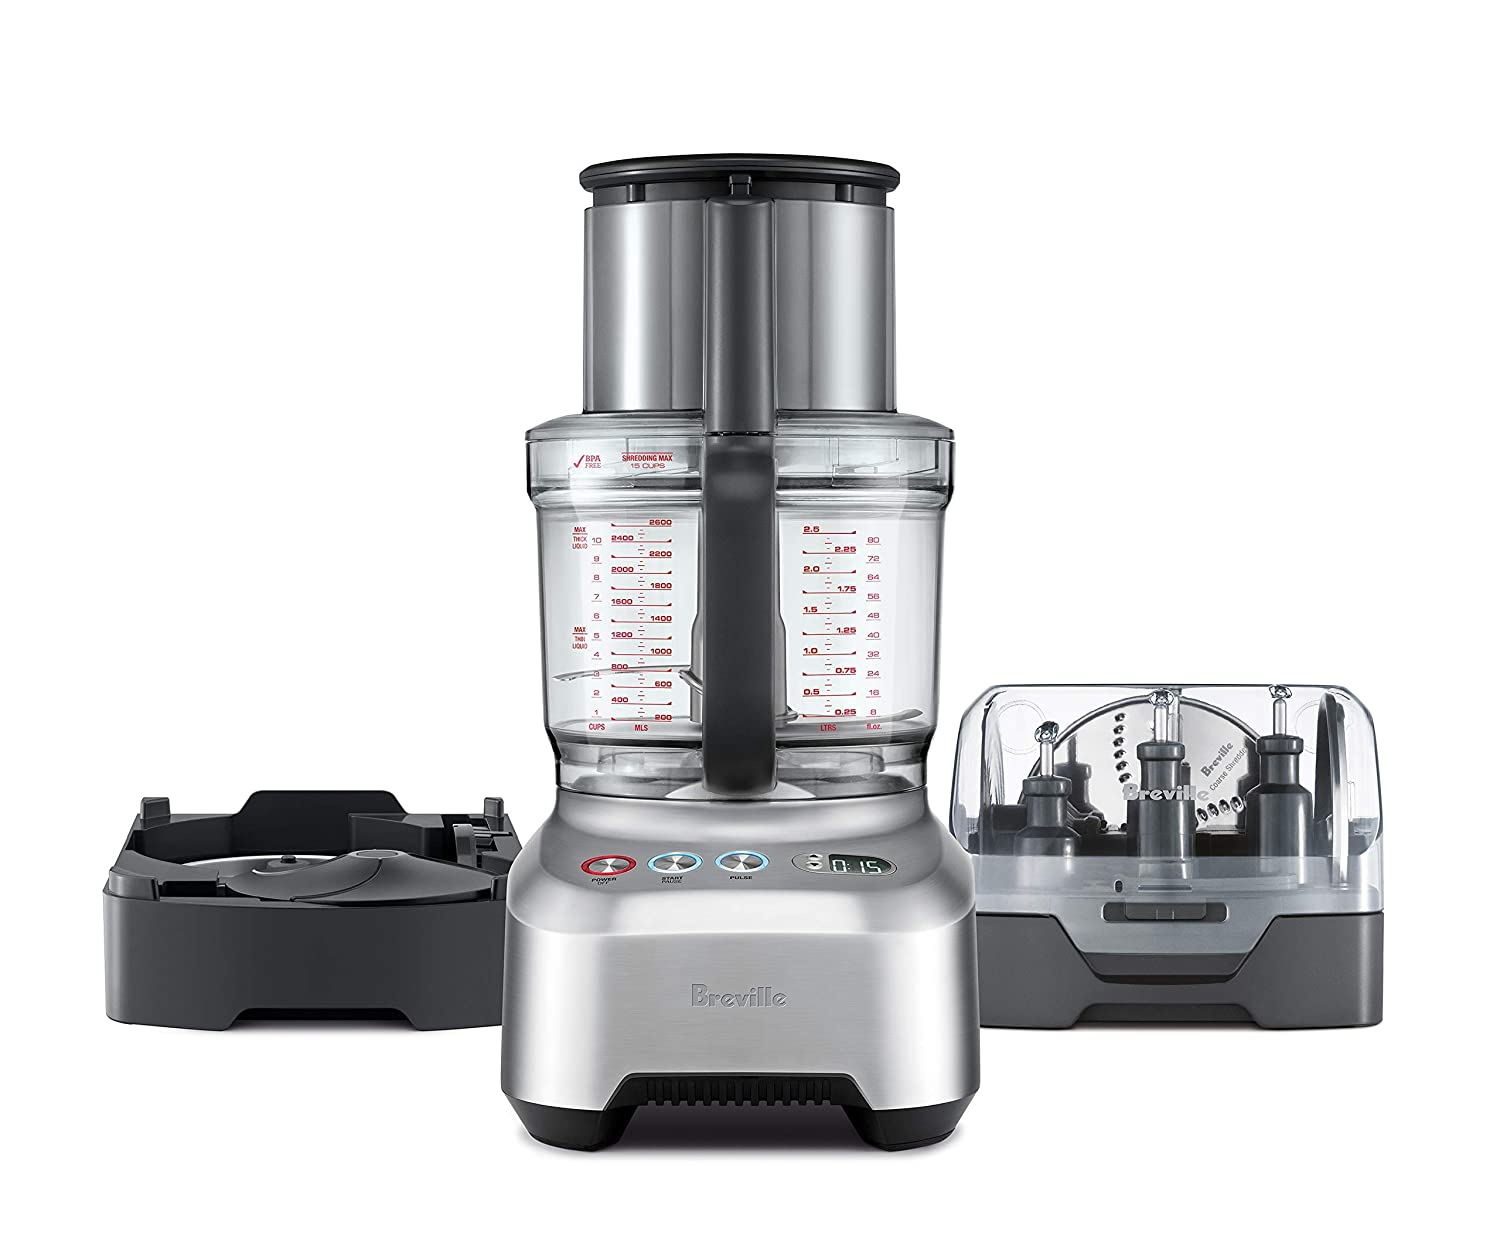 Breville BFP820BAL Sous Chef Peel and Dice, 16 Cup, Silver (Renewed)